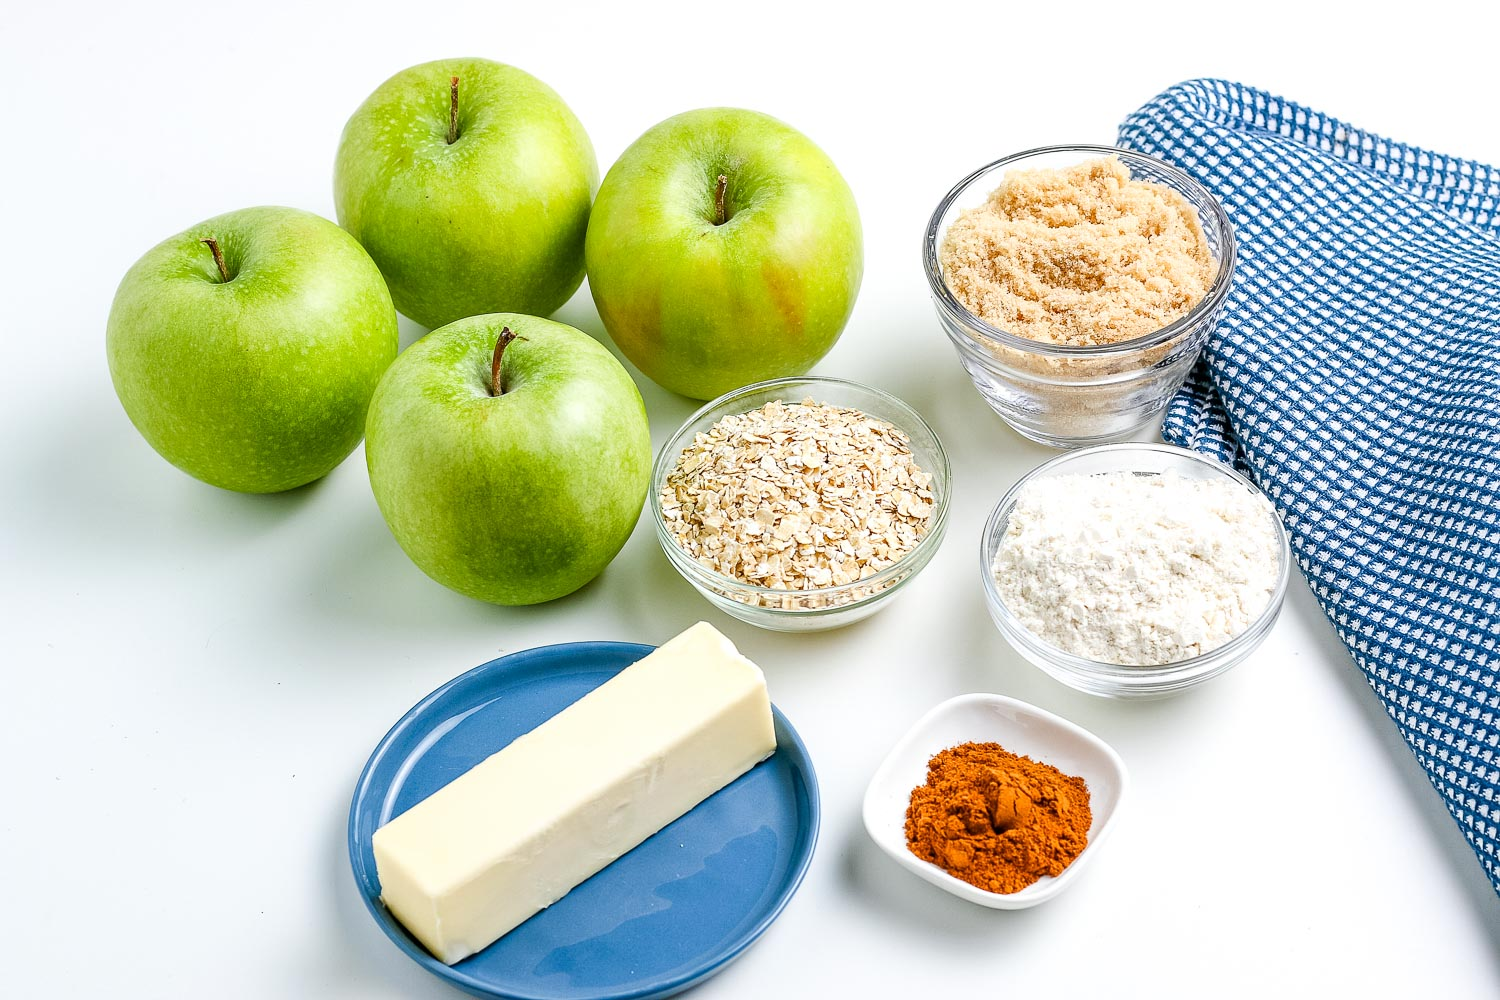 All of the ingredients needed to make this apple crisp recipe.